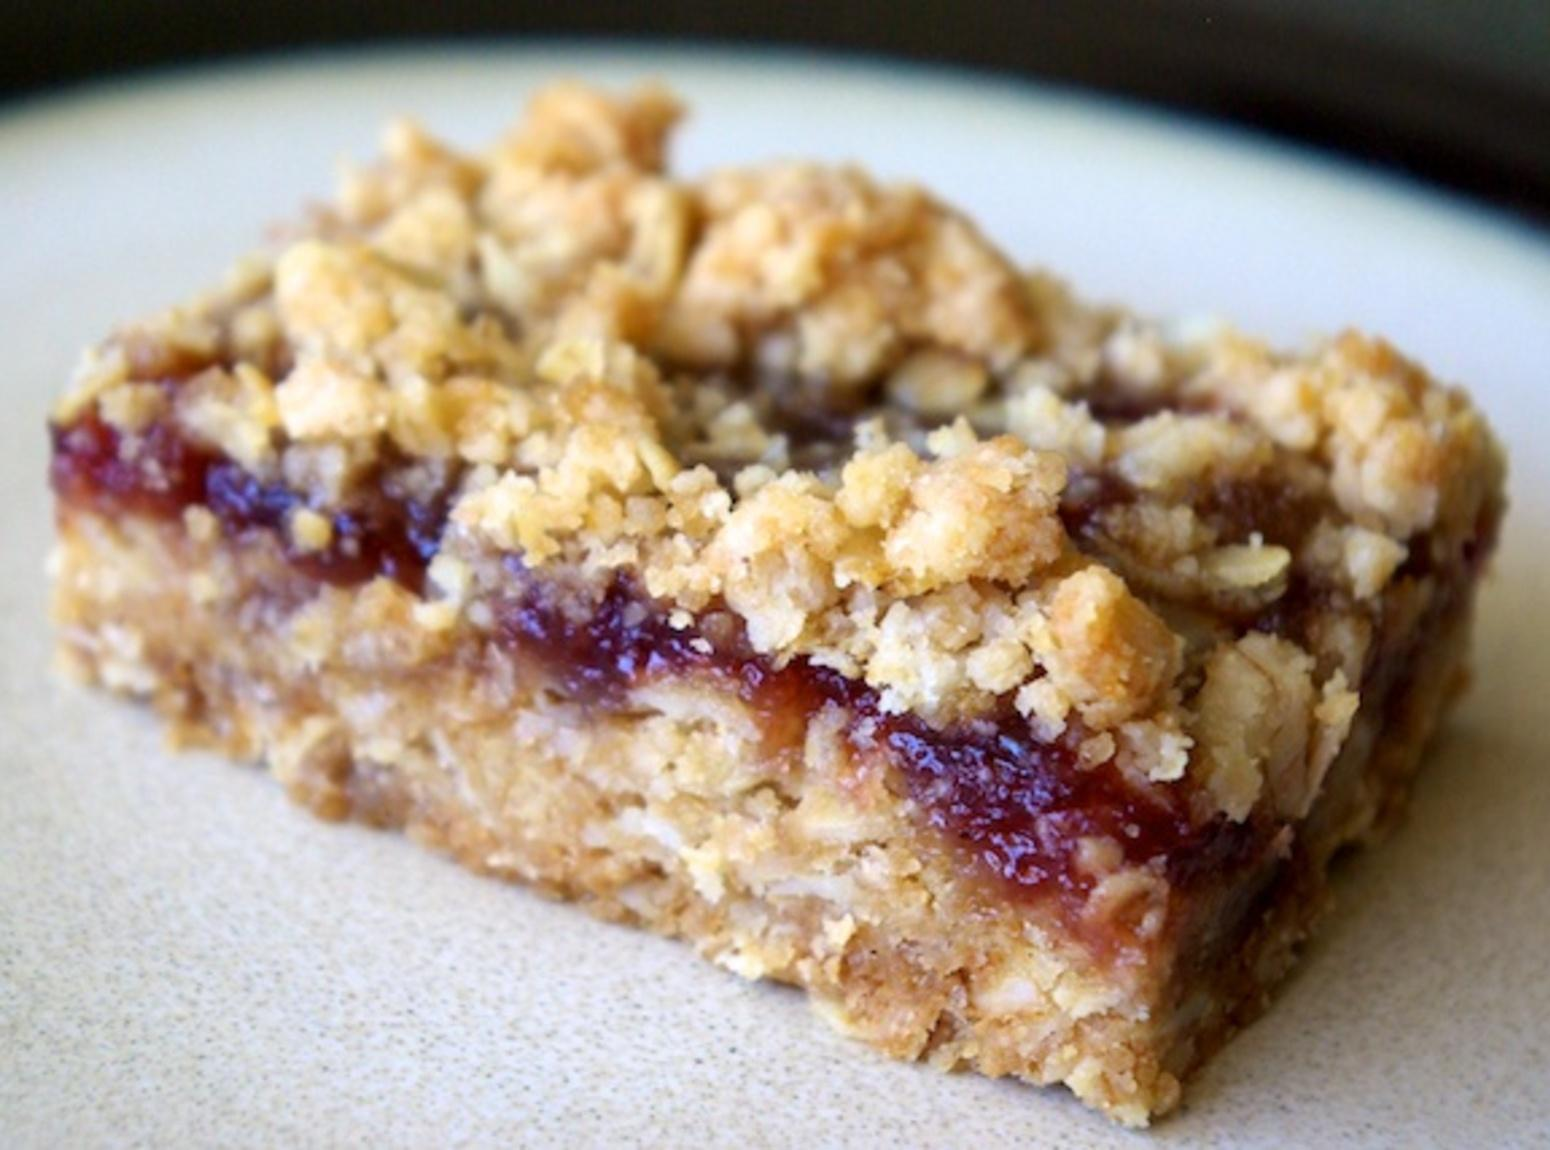 Strawberry Filled Oatmeal Bars Recipe | Just A Pinch Recipes